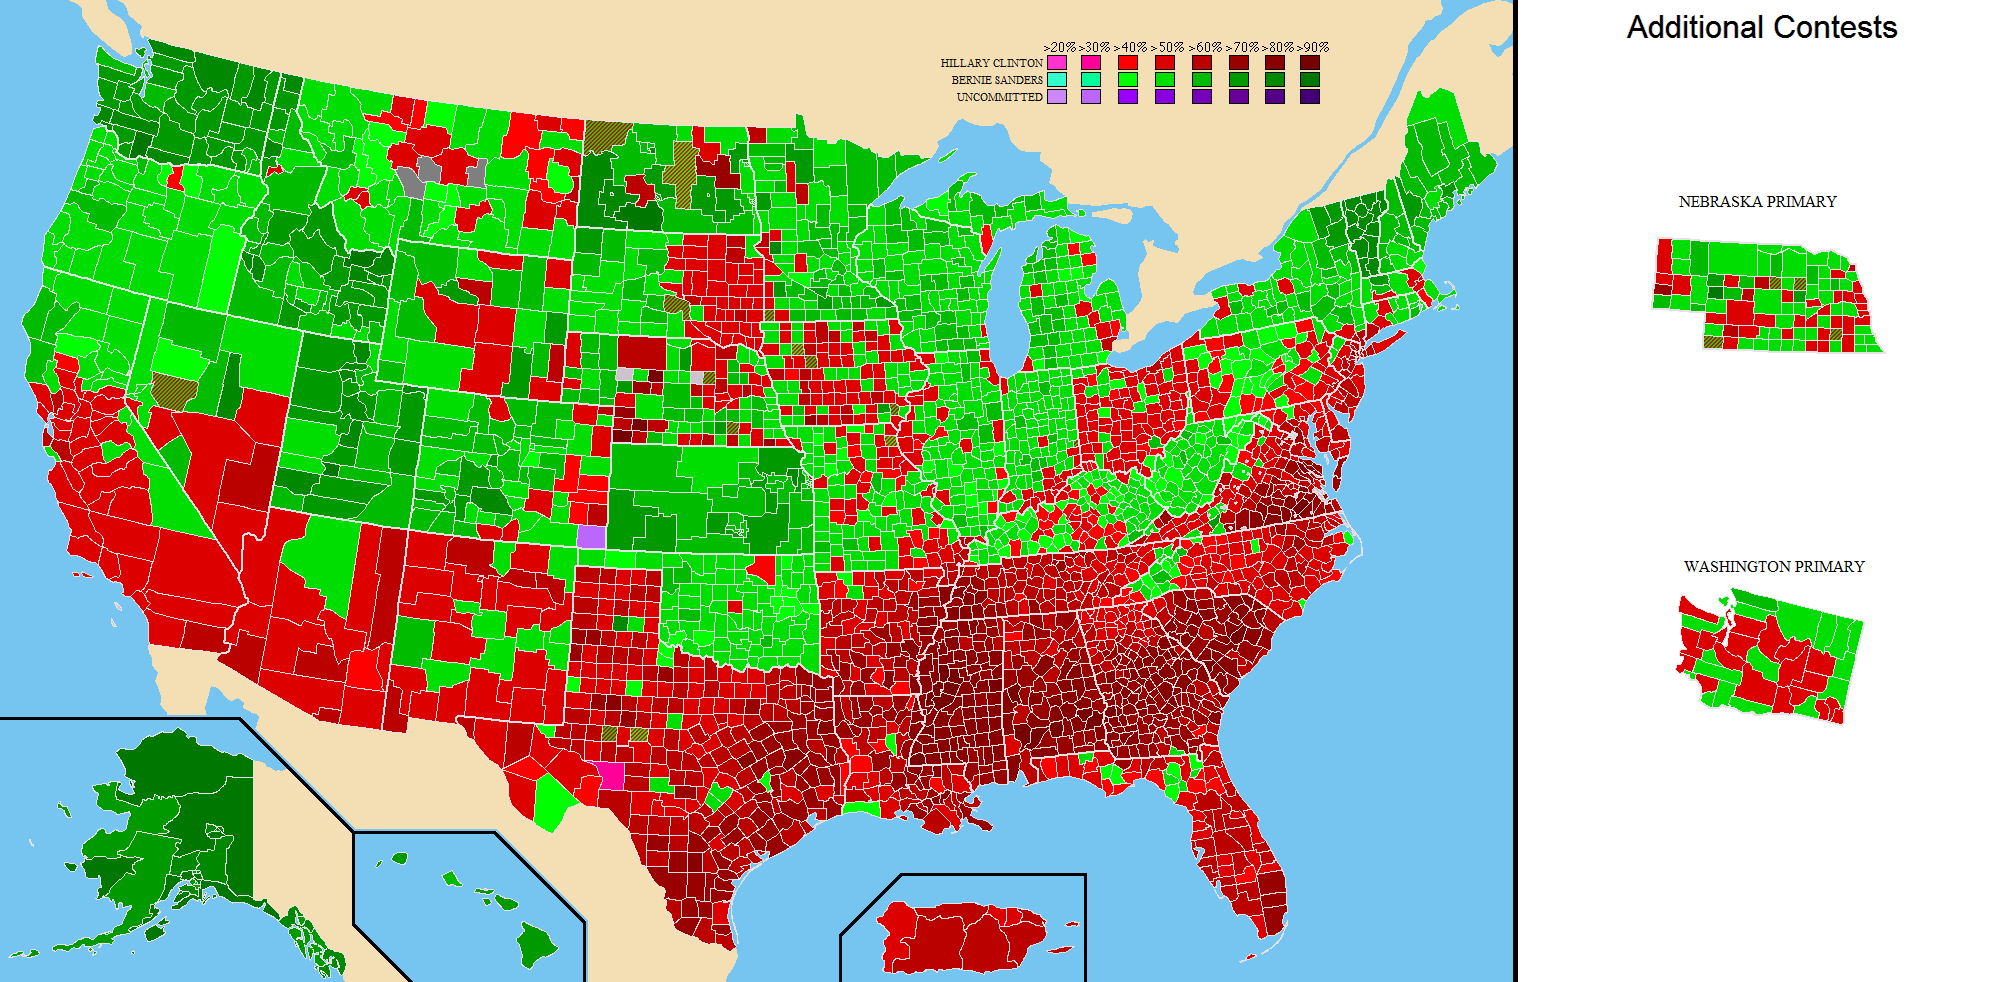 National Presidential Primary County And State Maps - 2016 us election results county map